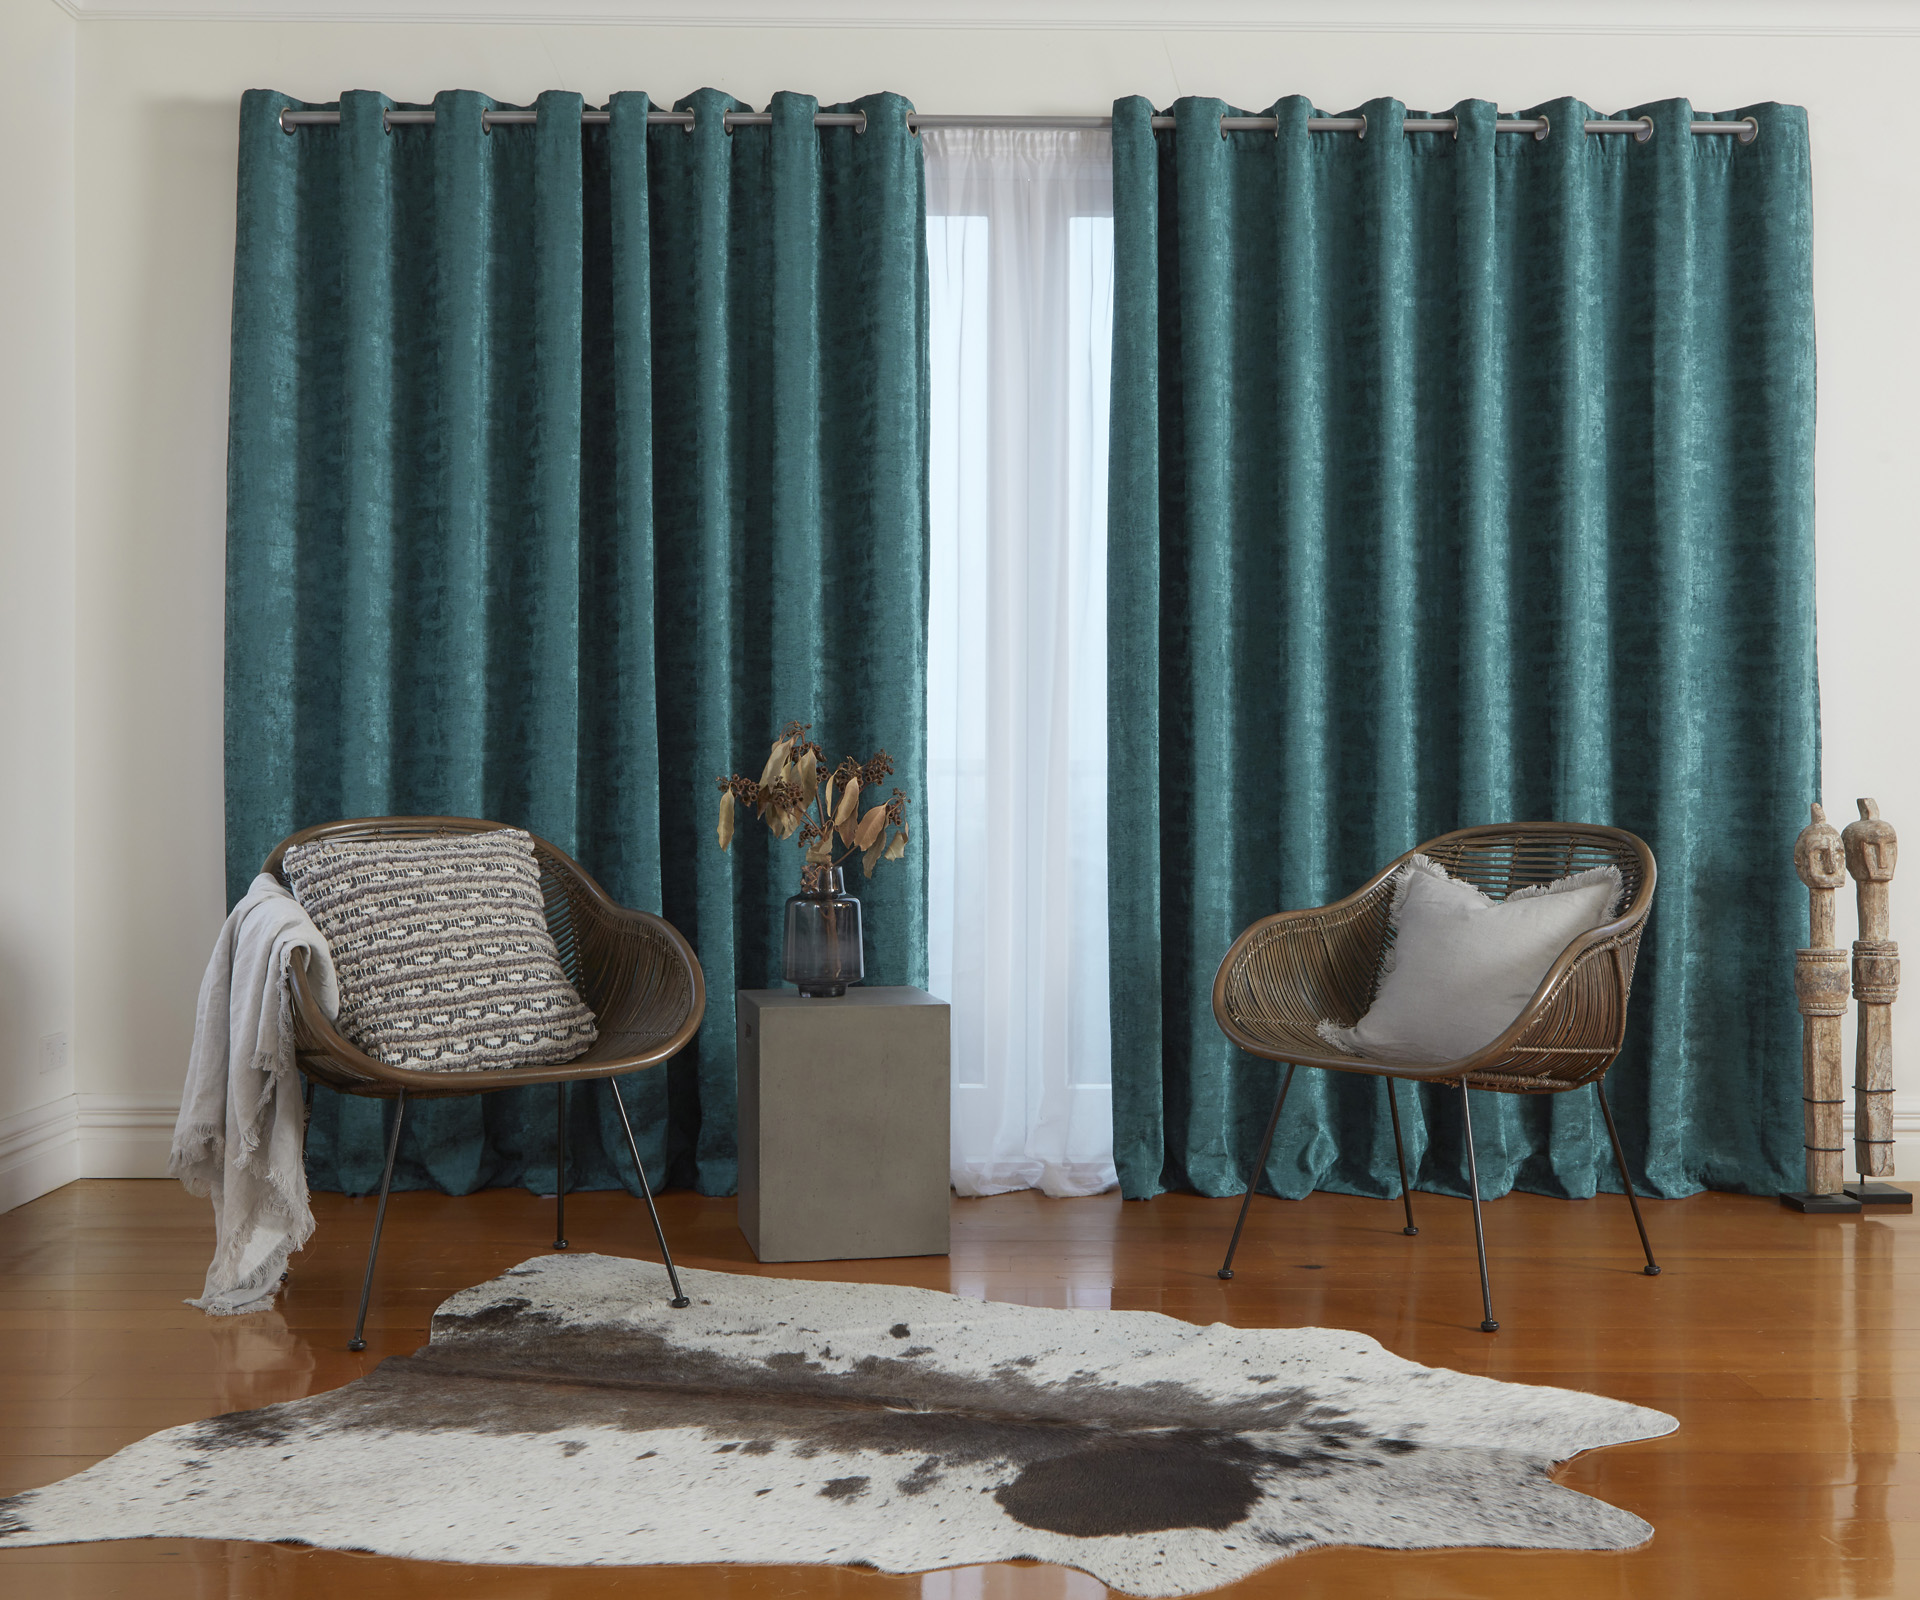 Top Trends For Curtains And Blinds Revealed At Simply You S Colour My Life